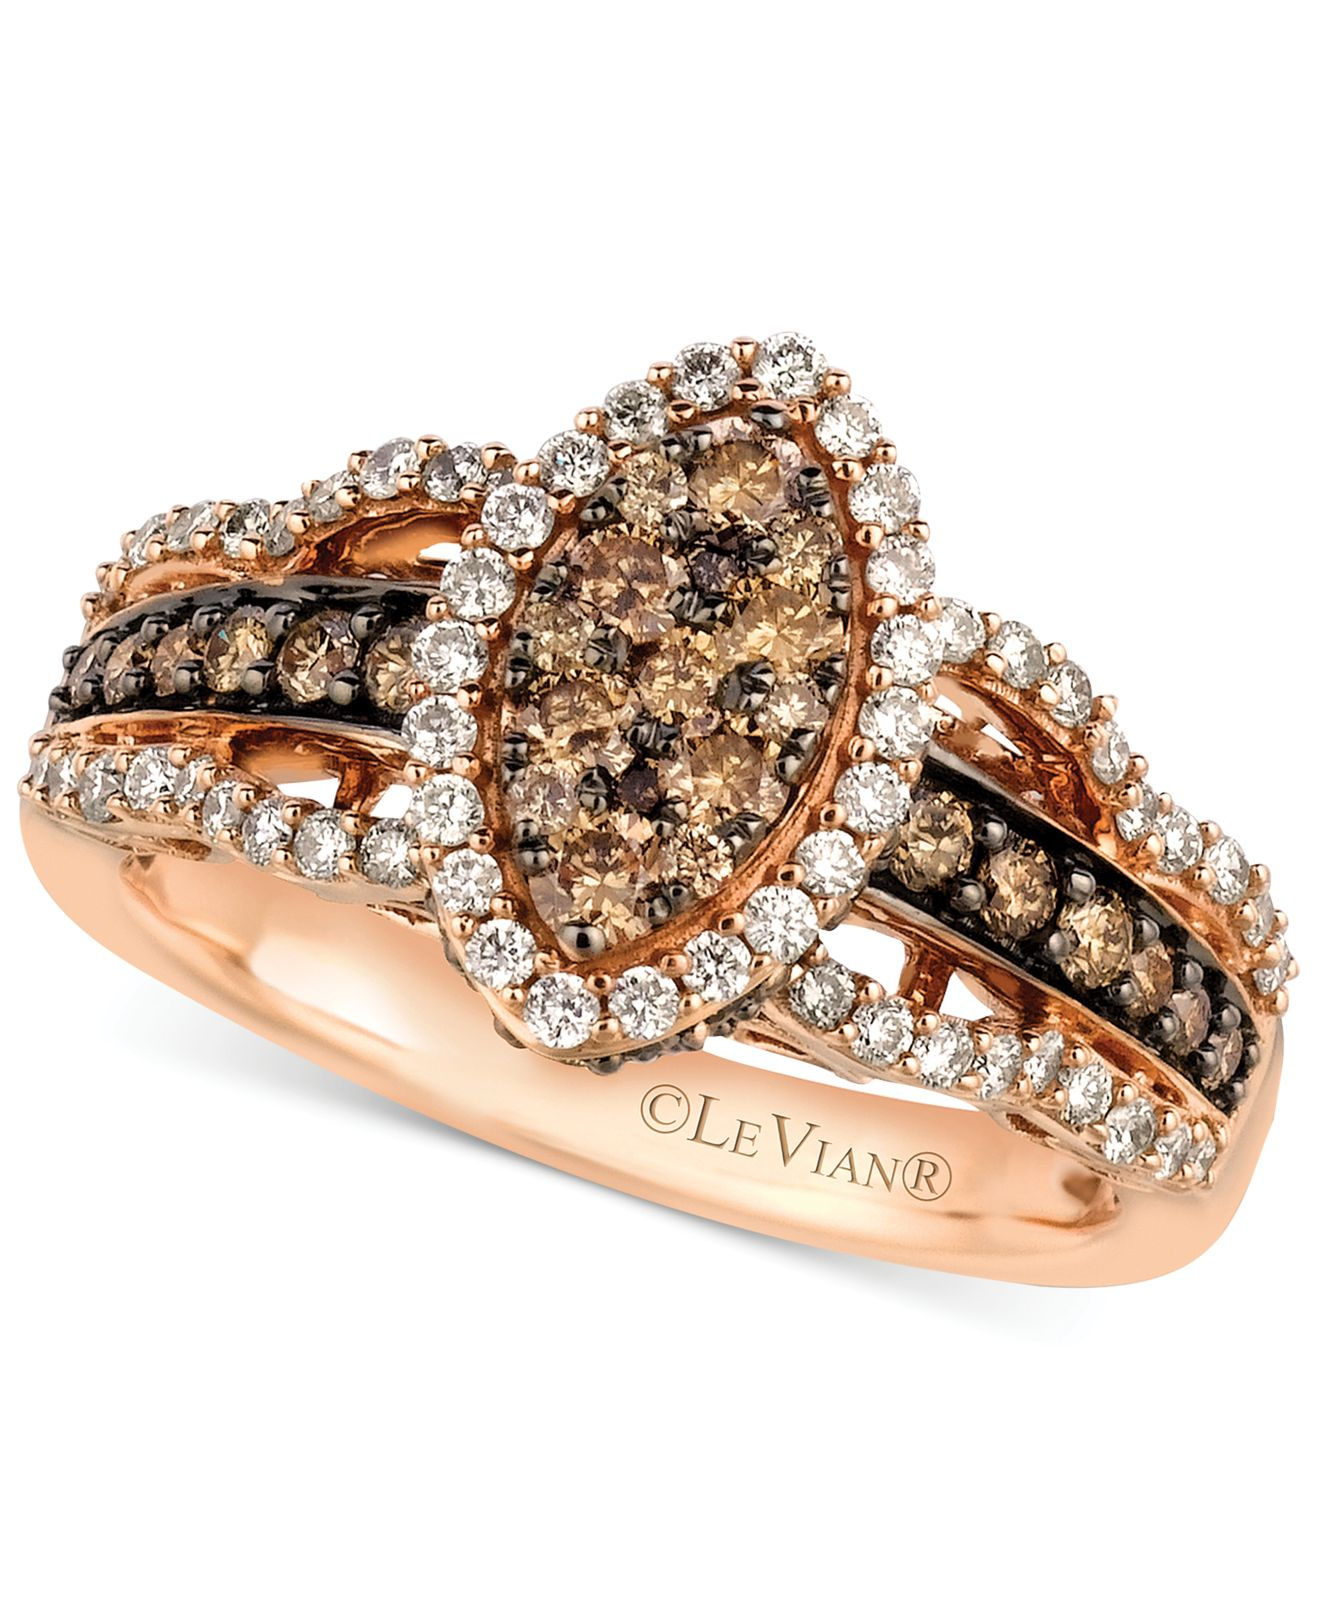 le vian white and chocolate ring in 14k gold